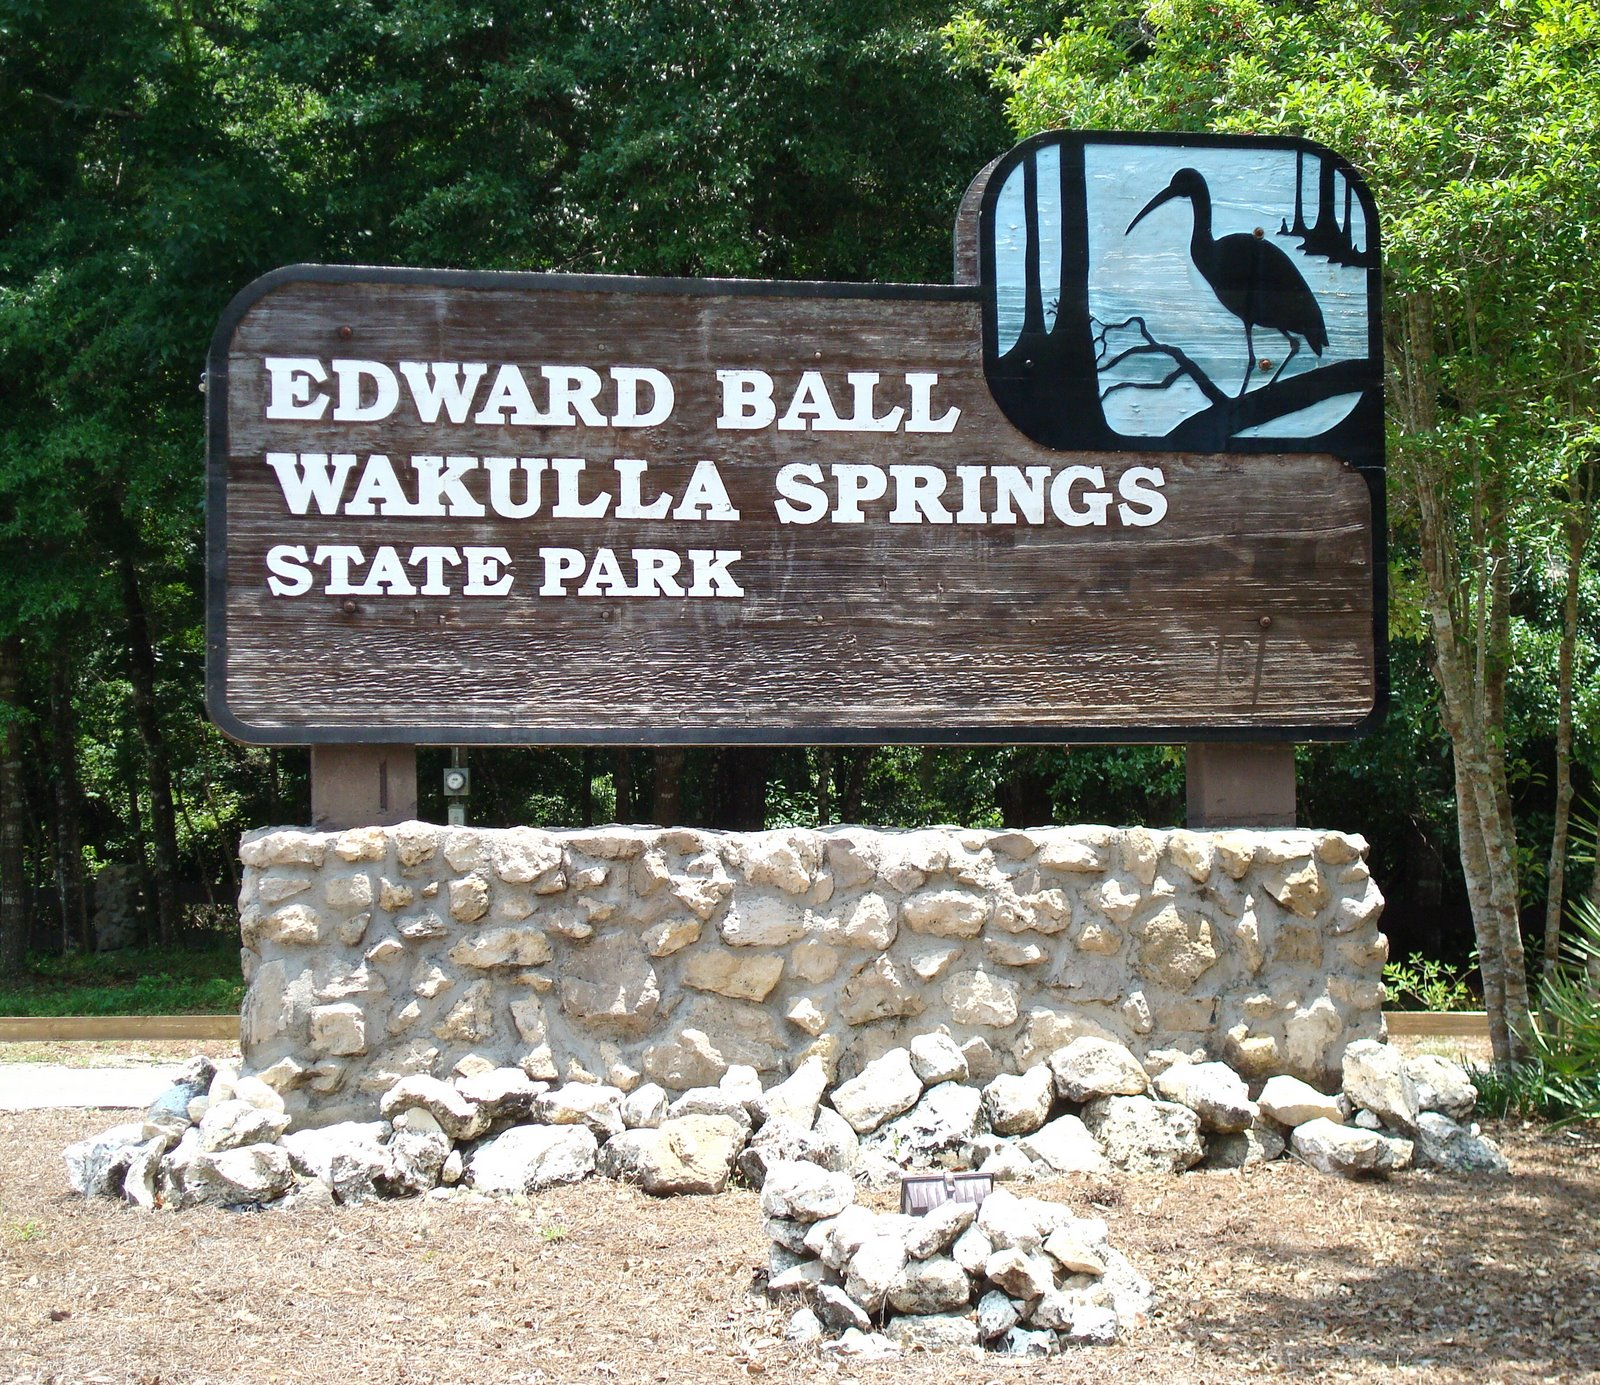 wakulla springs online hookup & dating The park draws its name from edward ball, the dupont family financial manager who sold the park lands to the state of florida wakulla springs is located 14 miles (23 km) south of tallahassee, florida and 5 miles (80 km) east of crawfordville in wakulla county, florida at the crossroads of state.